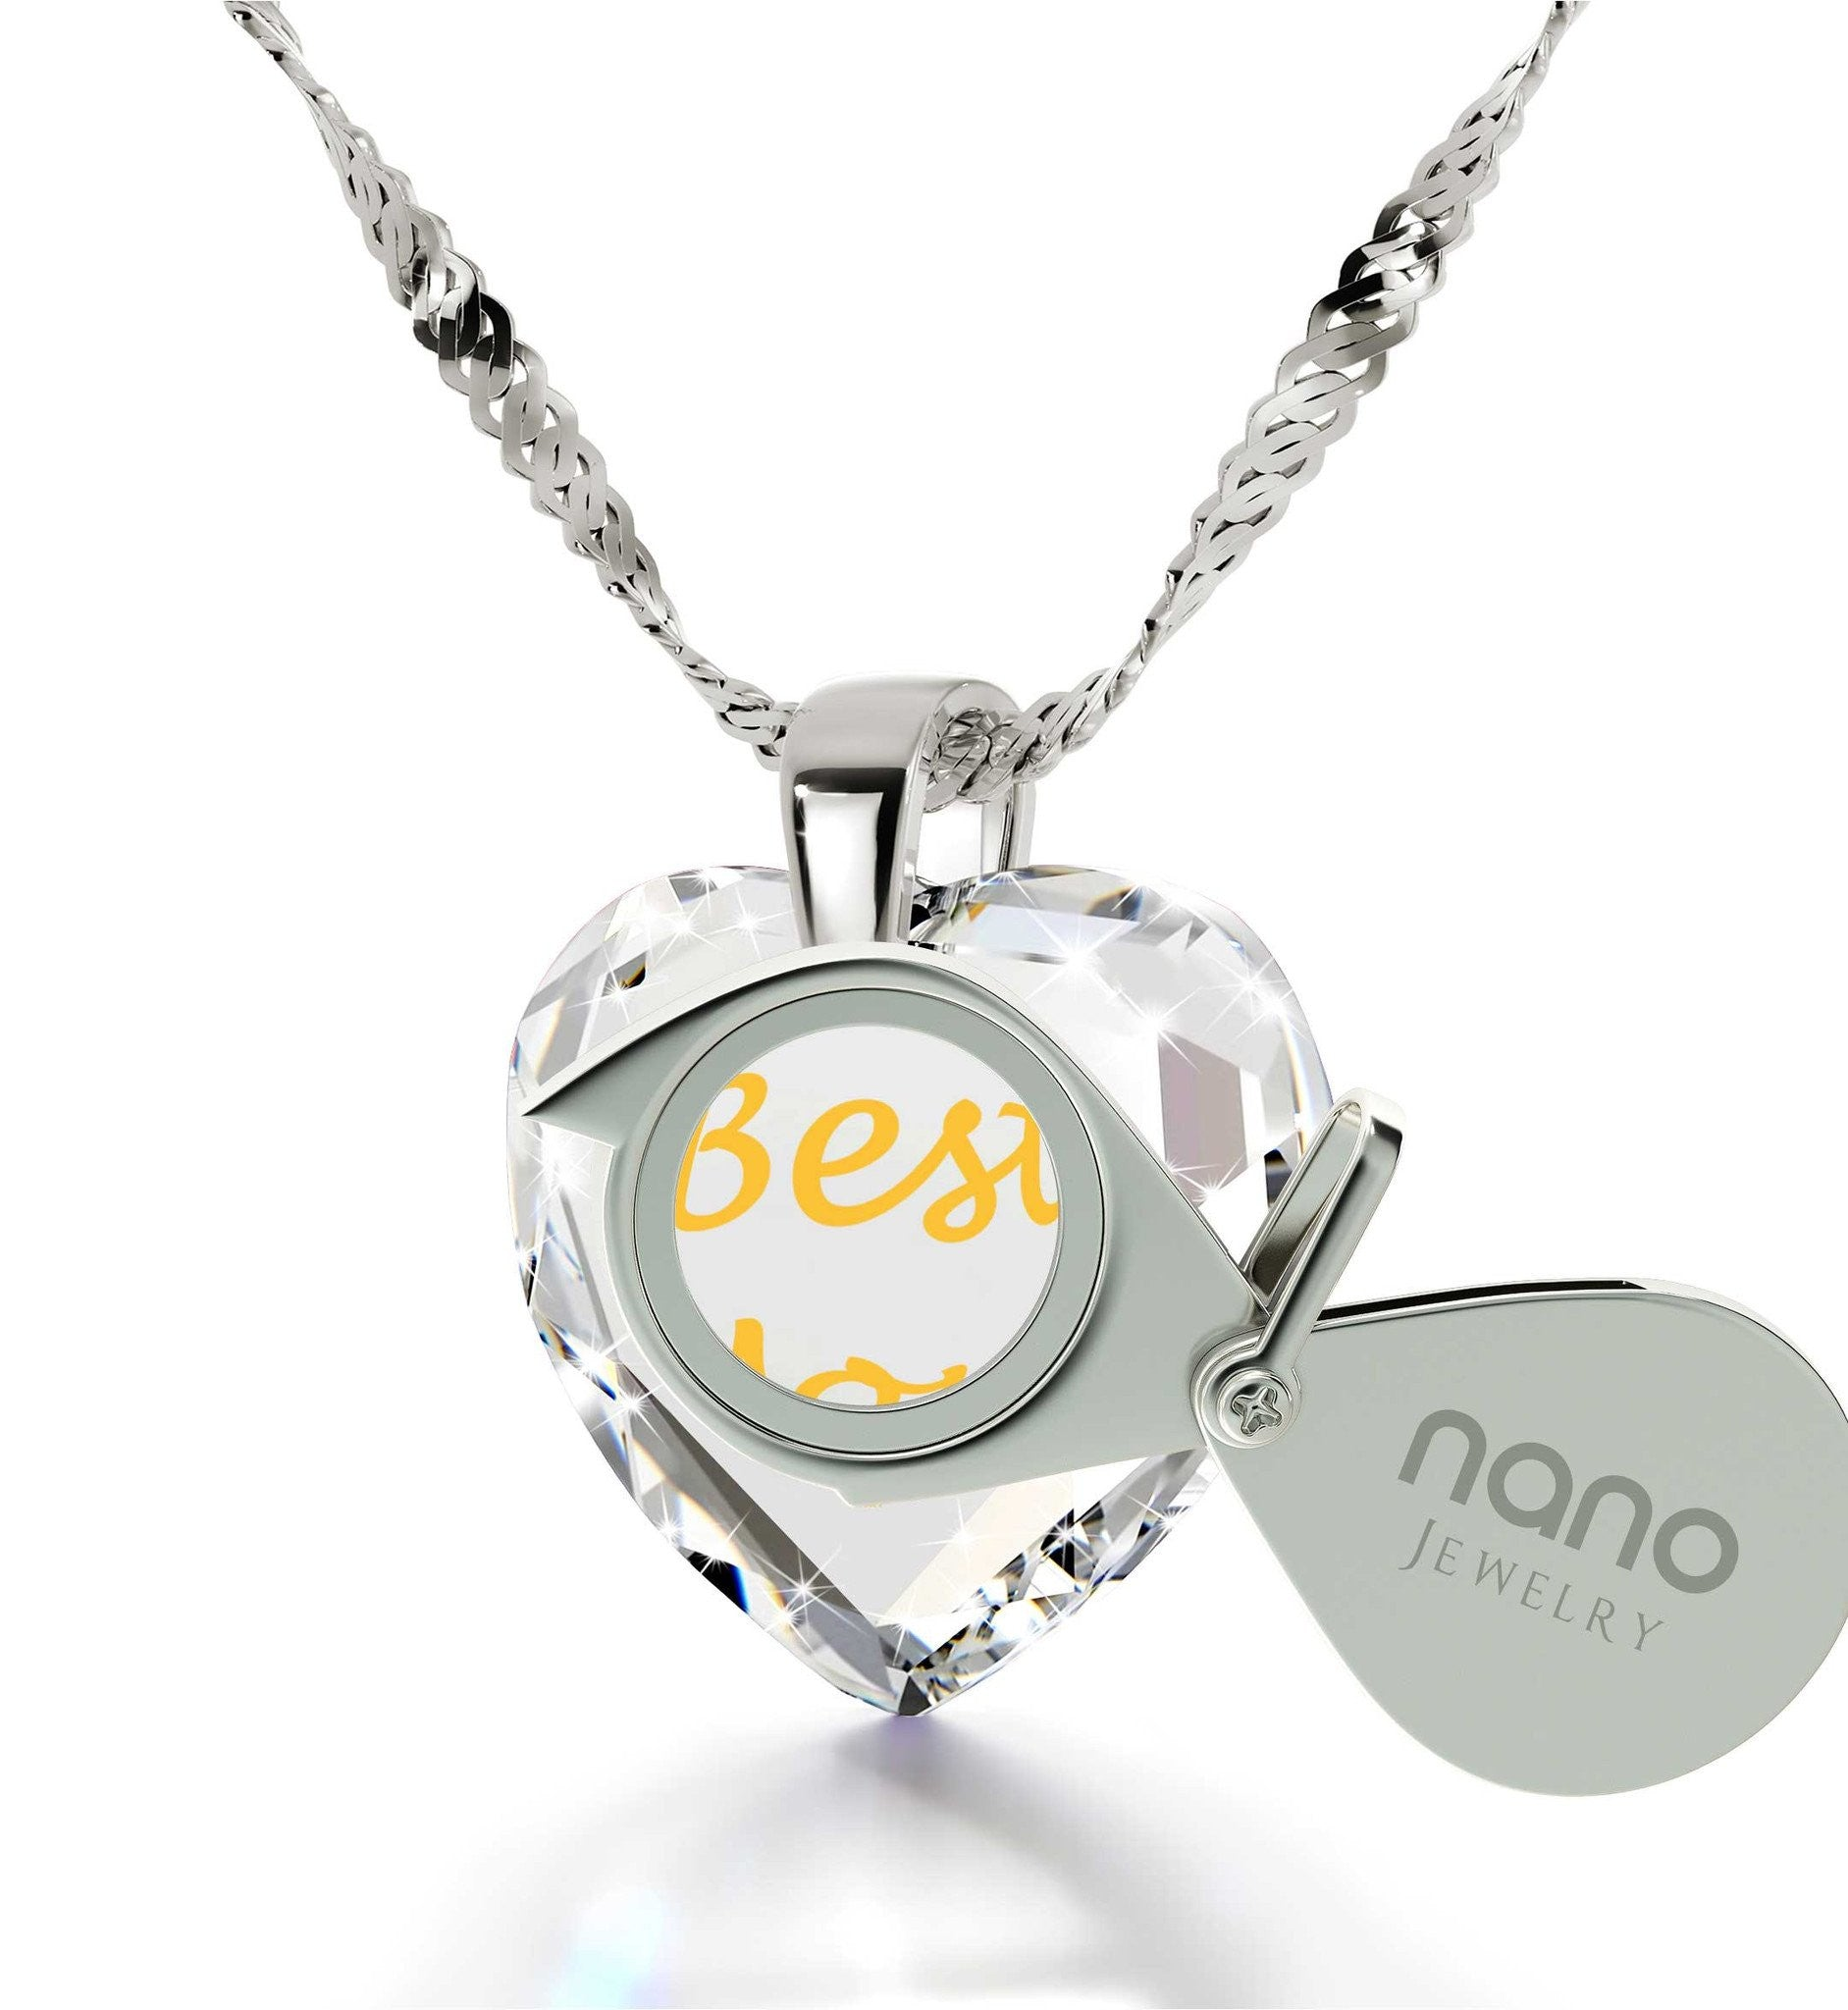 Presents for Mom Christmas, 14k White Gold Meaningful Necklaces, Mother Birthday Gift Ideas